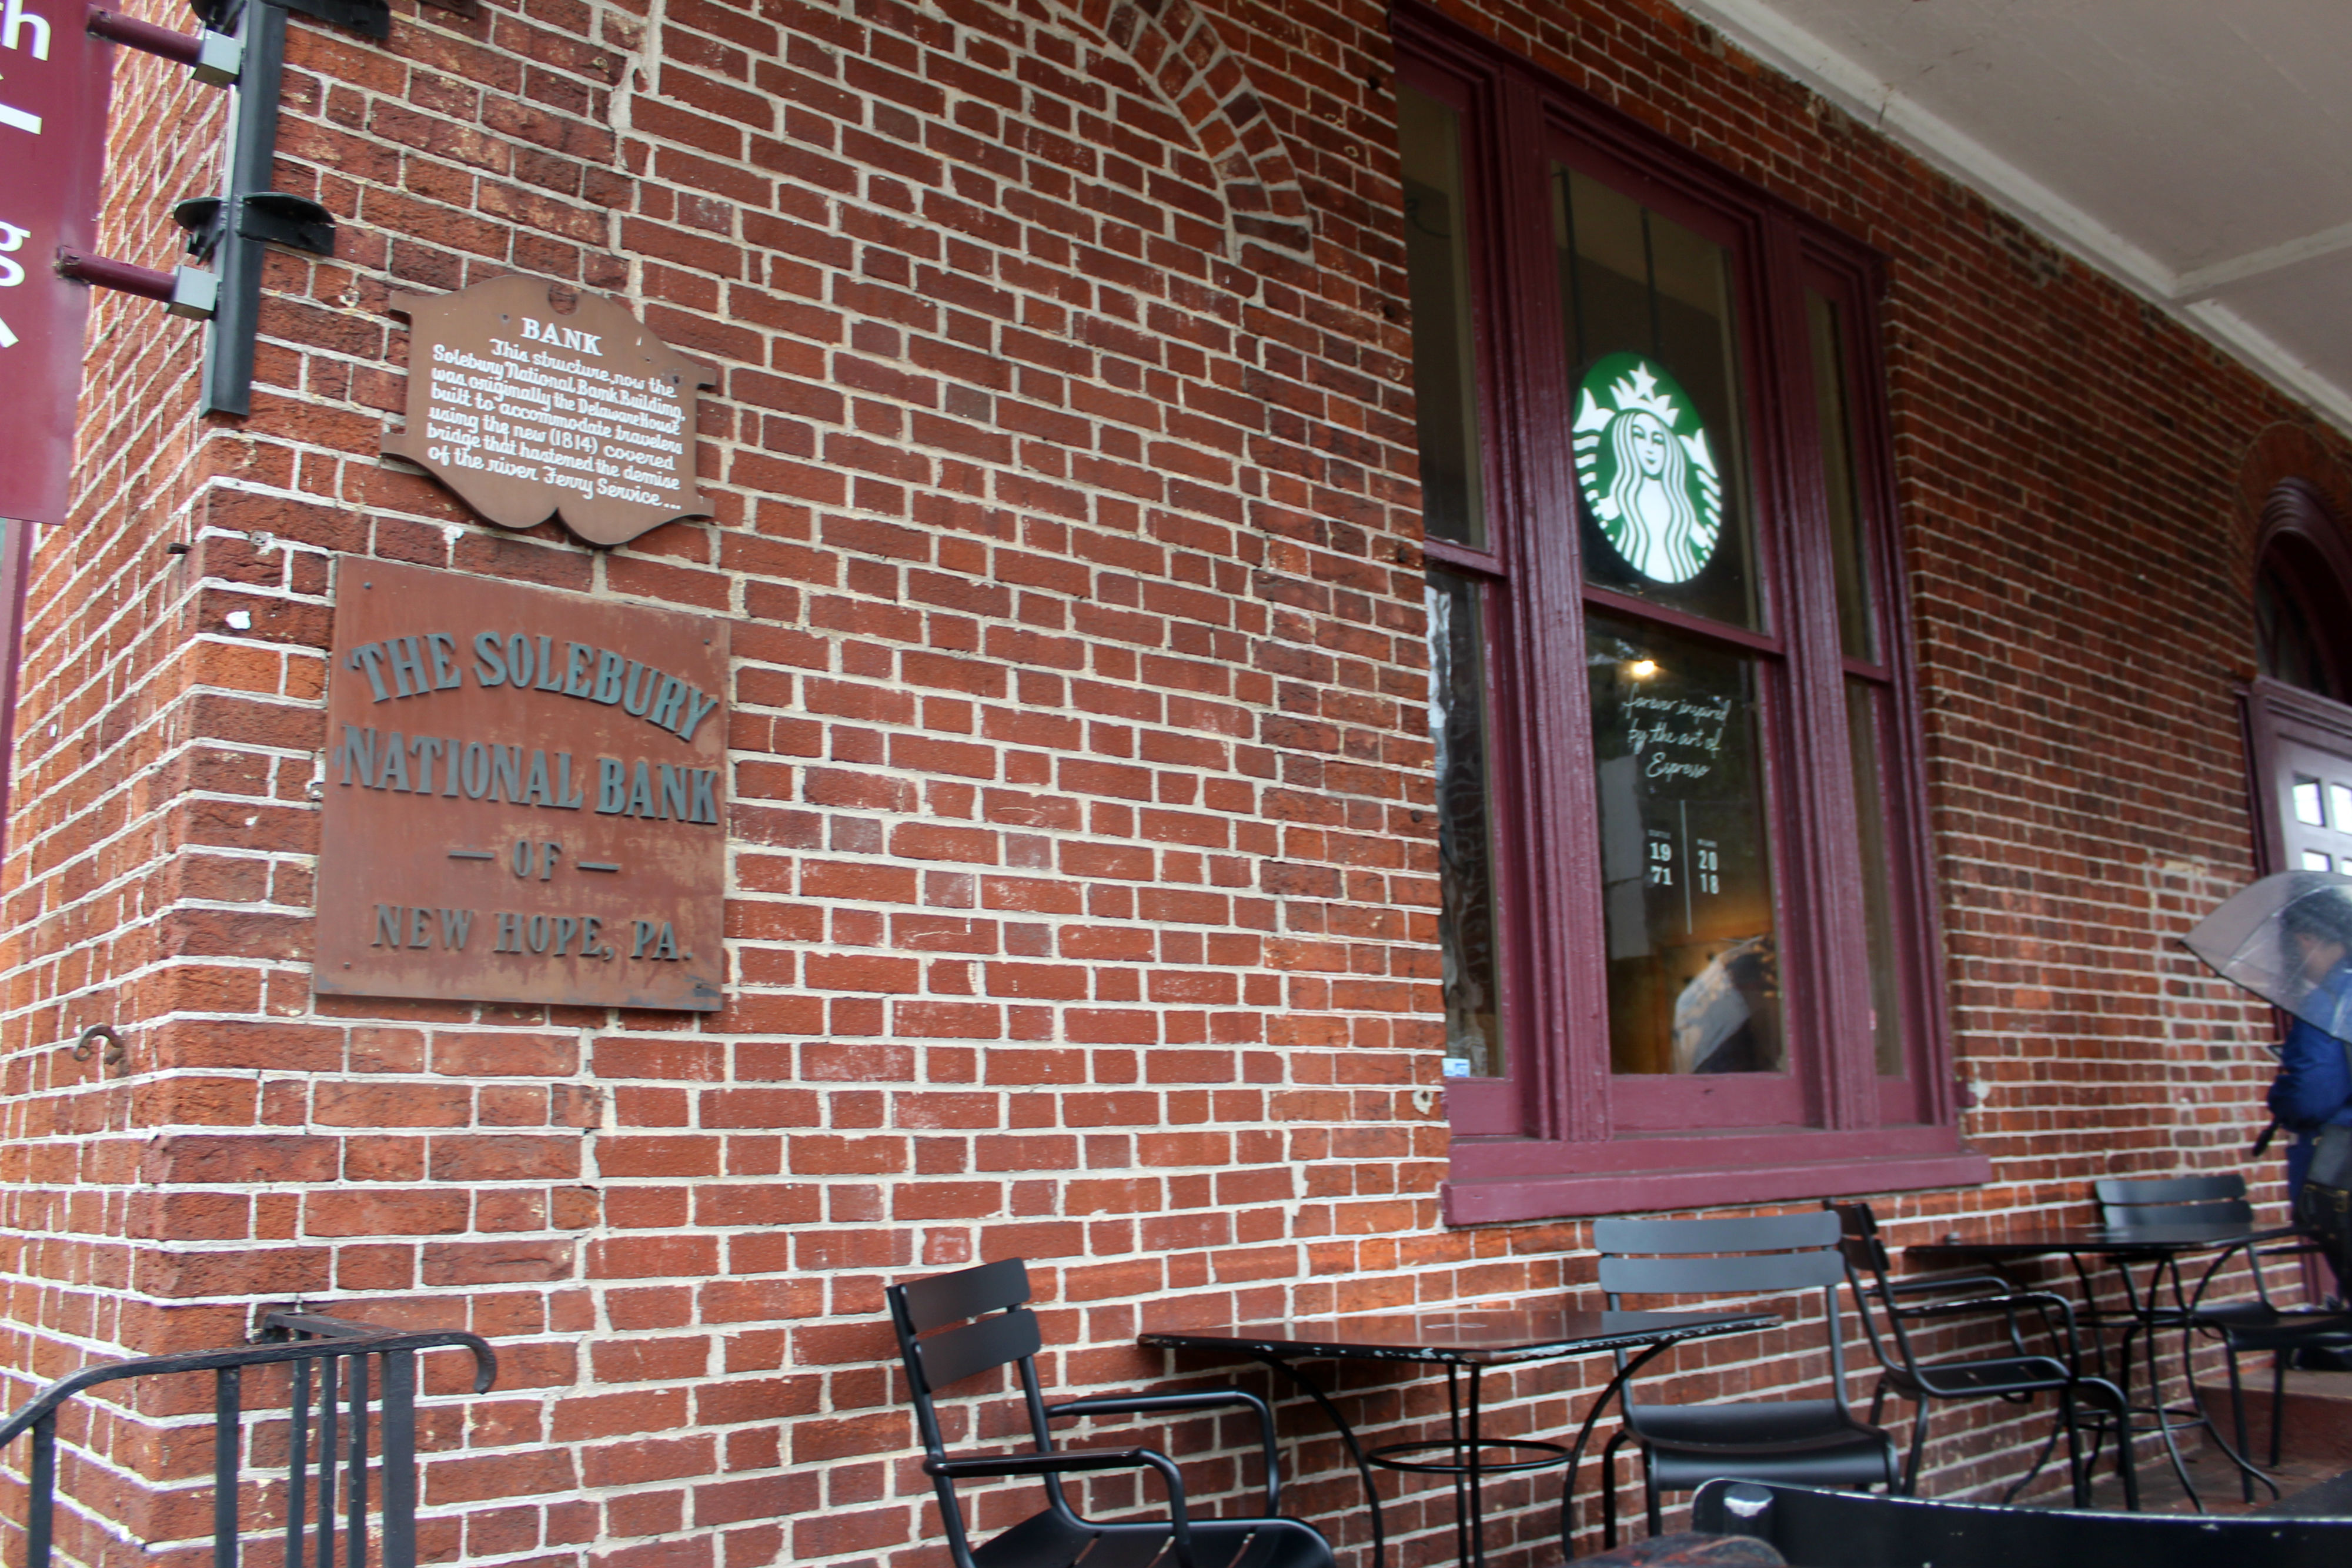 Even New Hope's Starbucks was in a historic building!{&nbsp;}(Image: Julie Gallagher)<p></p>